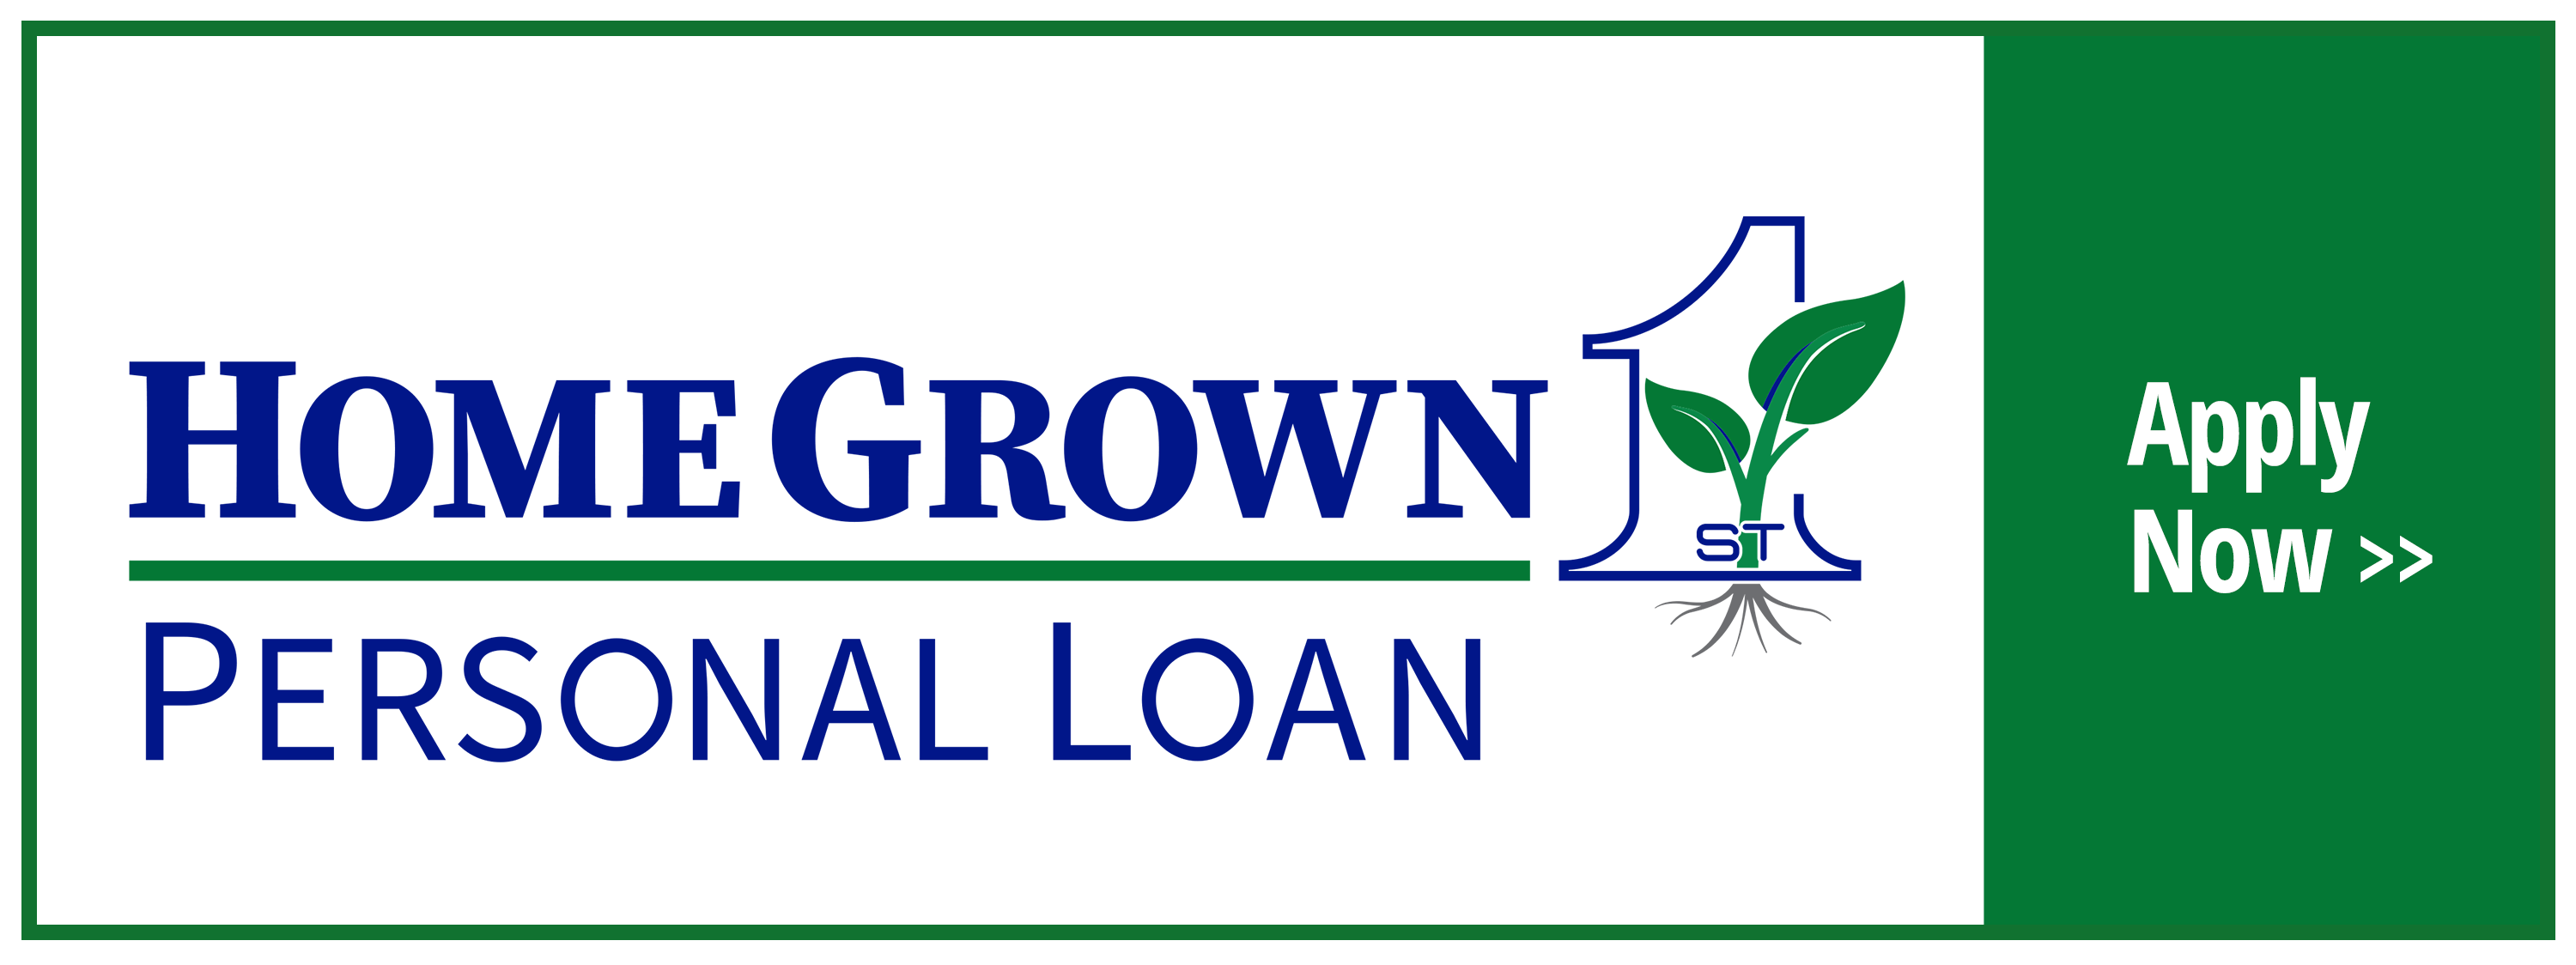 First National Bank of Amboy Personal Loan logo.